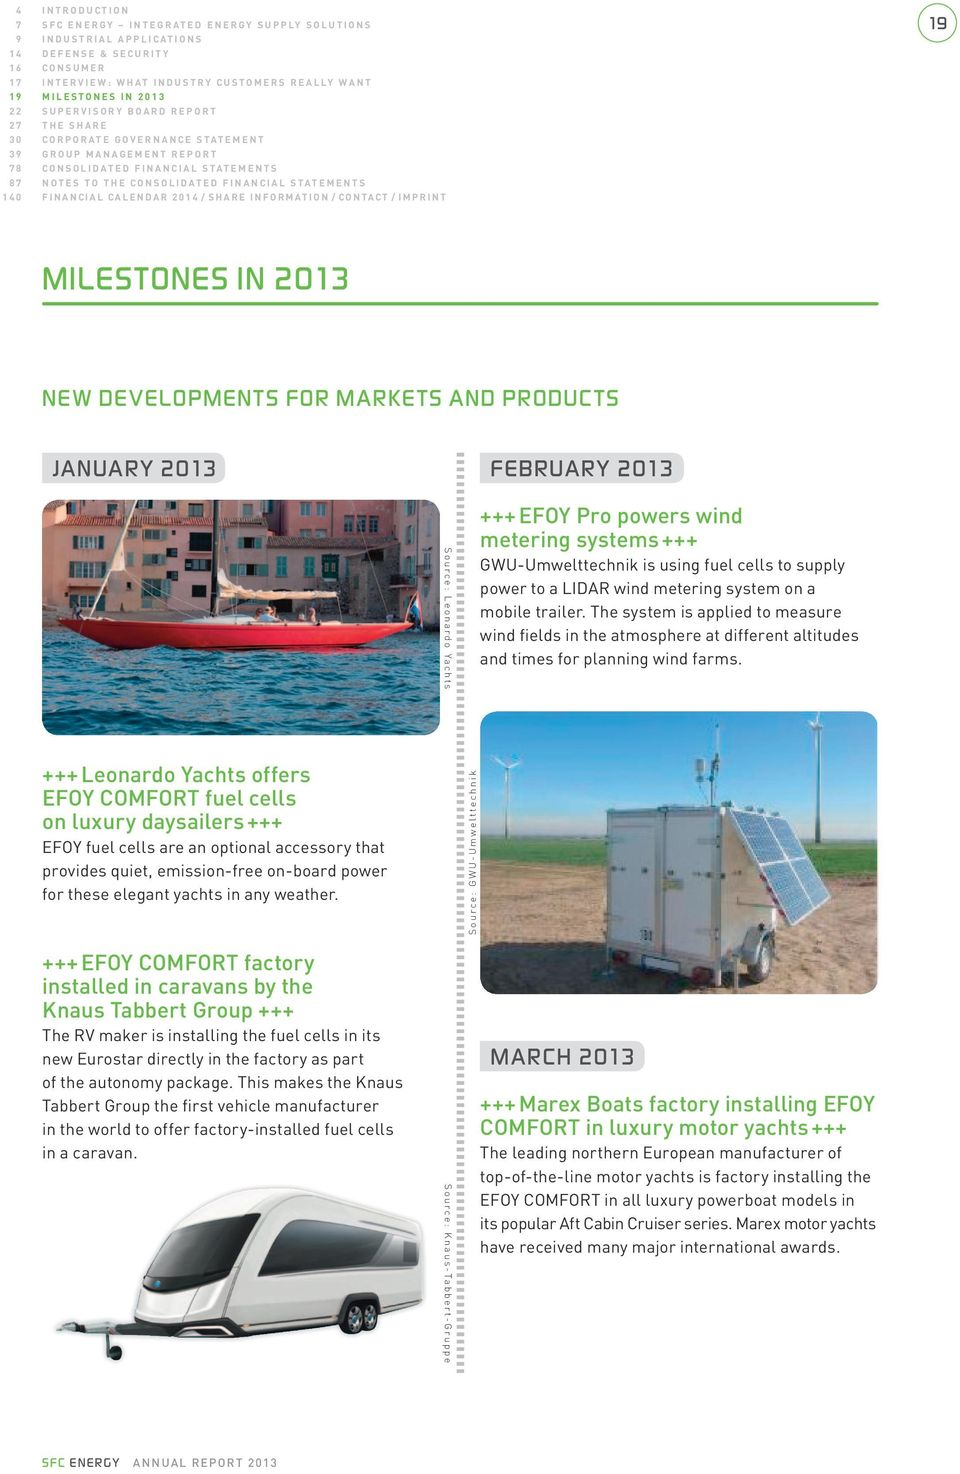 calendar 2014 / SharE InFormatIon / contact / ImPrInt 19 milestones in 2013 NEw developments FoR markets ANd products JANuARY 2013 +++ Leonardo Yachts offers EFOY COMFORT fuel cells on luxury